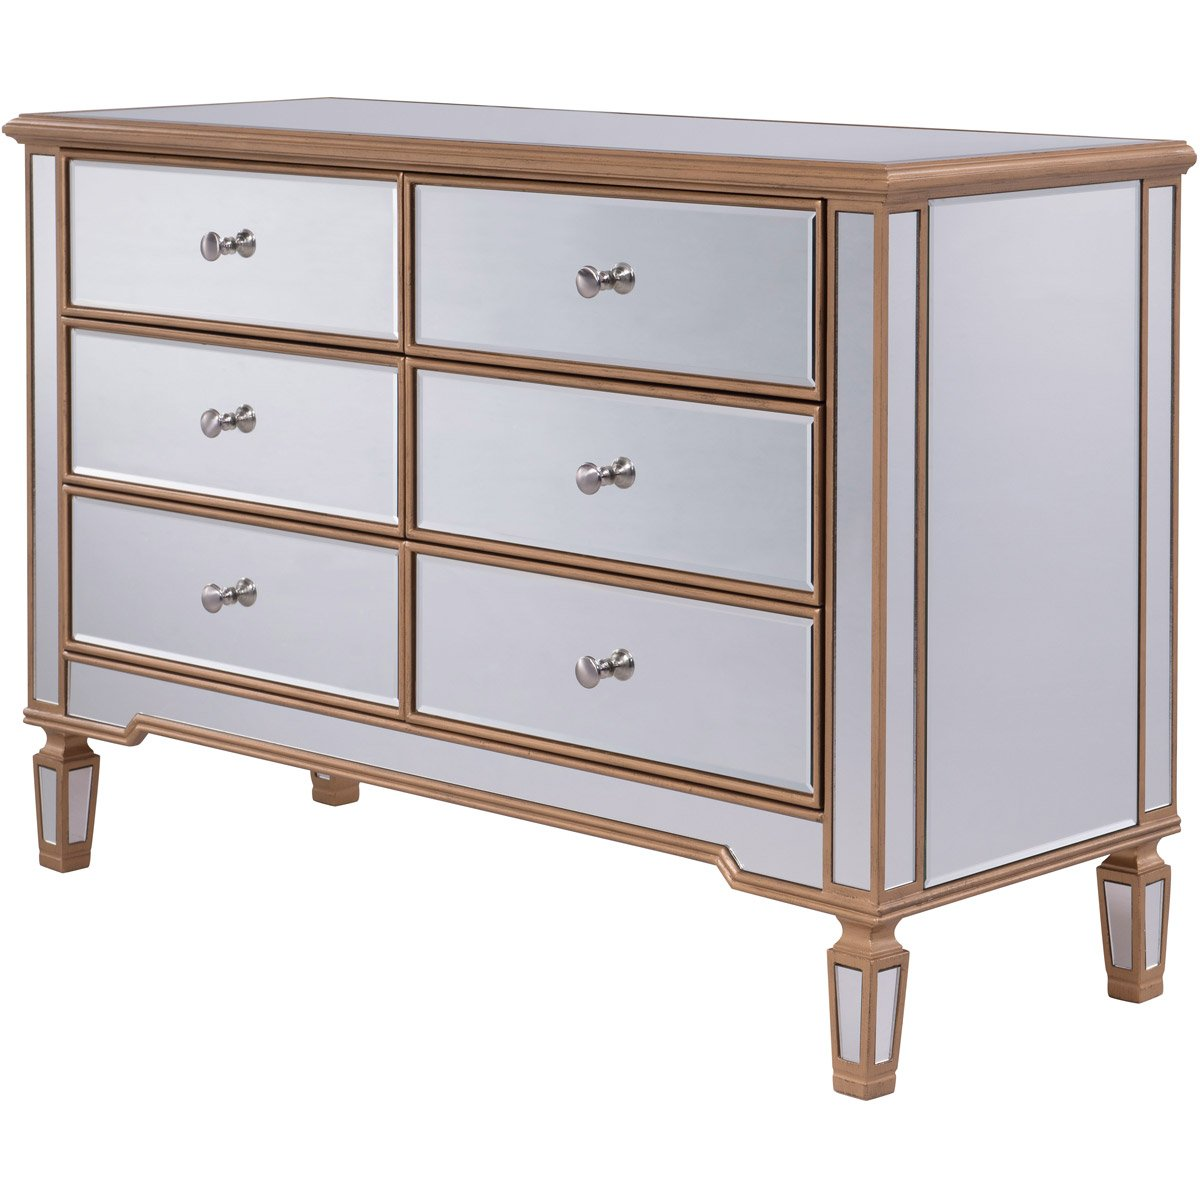 Contempo 48 X 32 6 Drawer Cabinet -Antique Gold Finish (Mf6-1117G) Cabinet